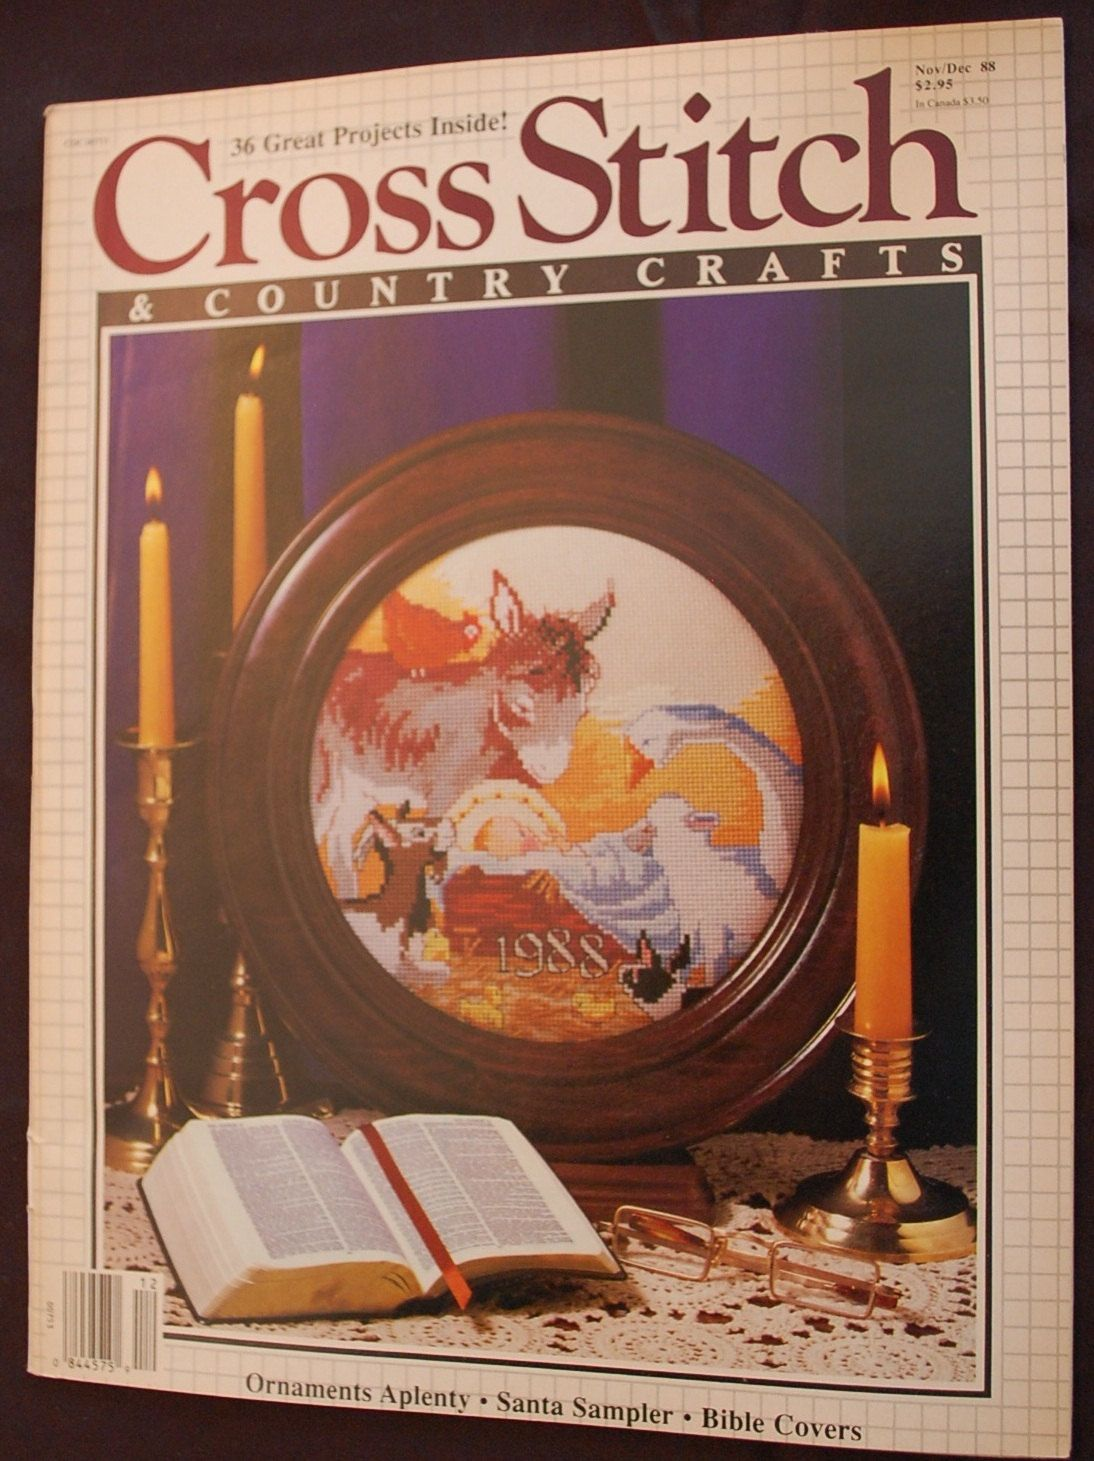 Cross stitch and country crafts magazine back issues - Cross Stitch Country Crafts Magazine By Sewwhateverandgifts